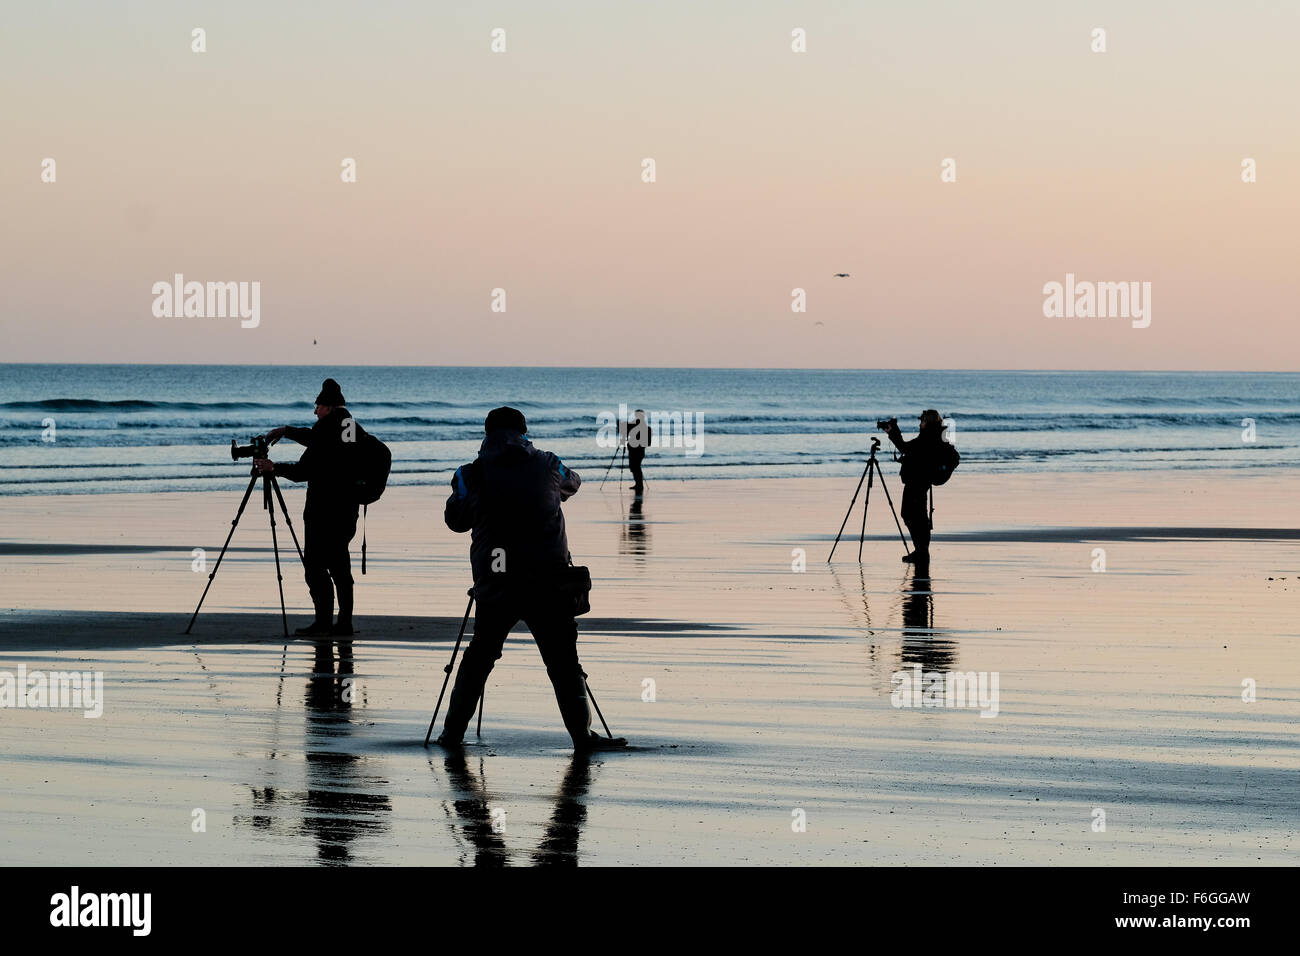 Four photographers are silhouetted as they line up their shots on the beach at Saltburn-by-the-Sea, UK. - Stock Image